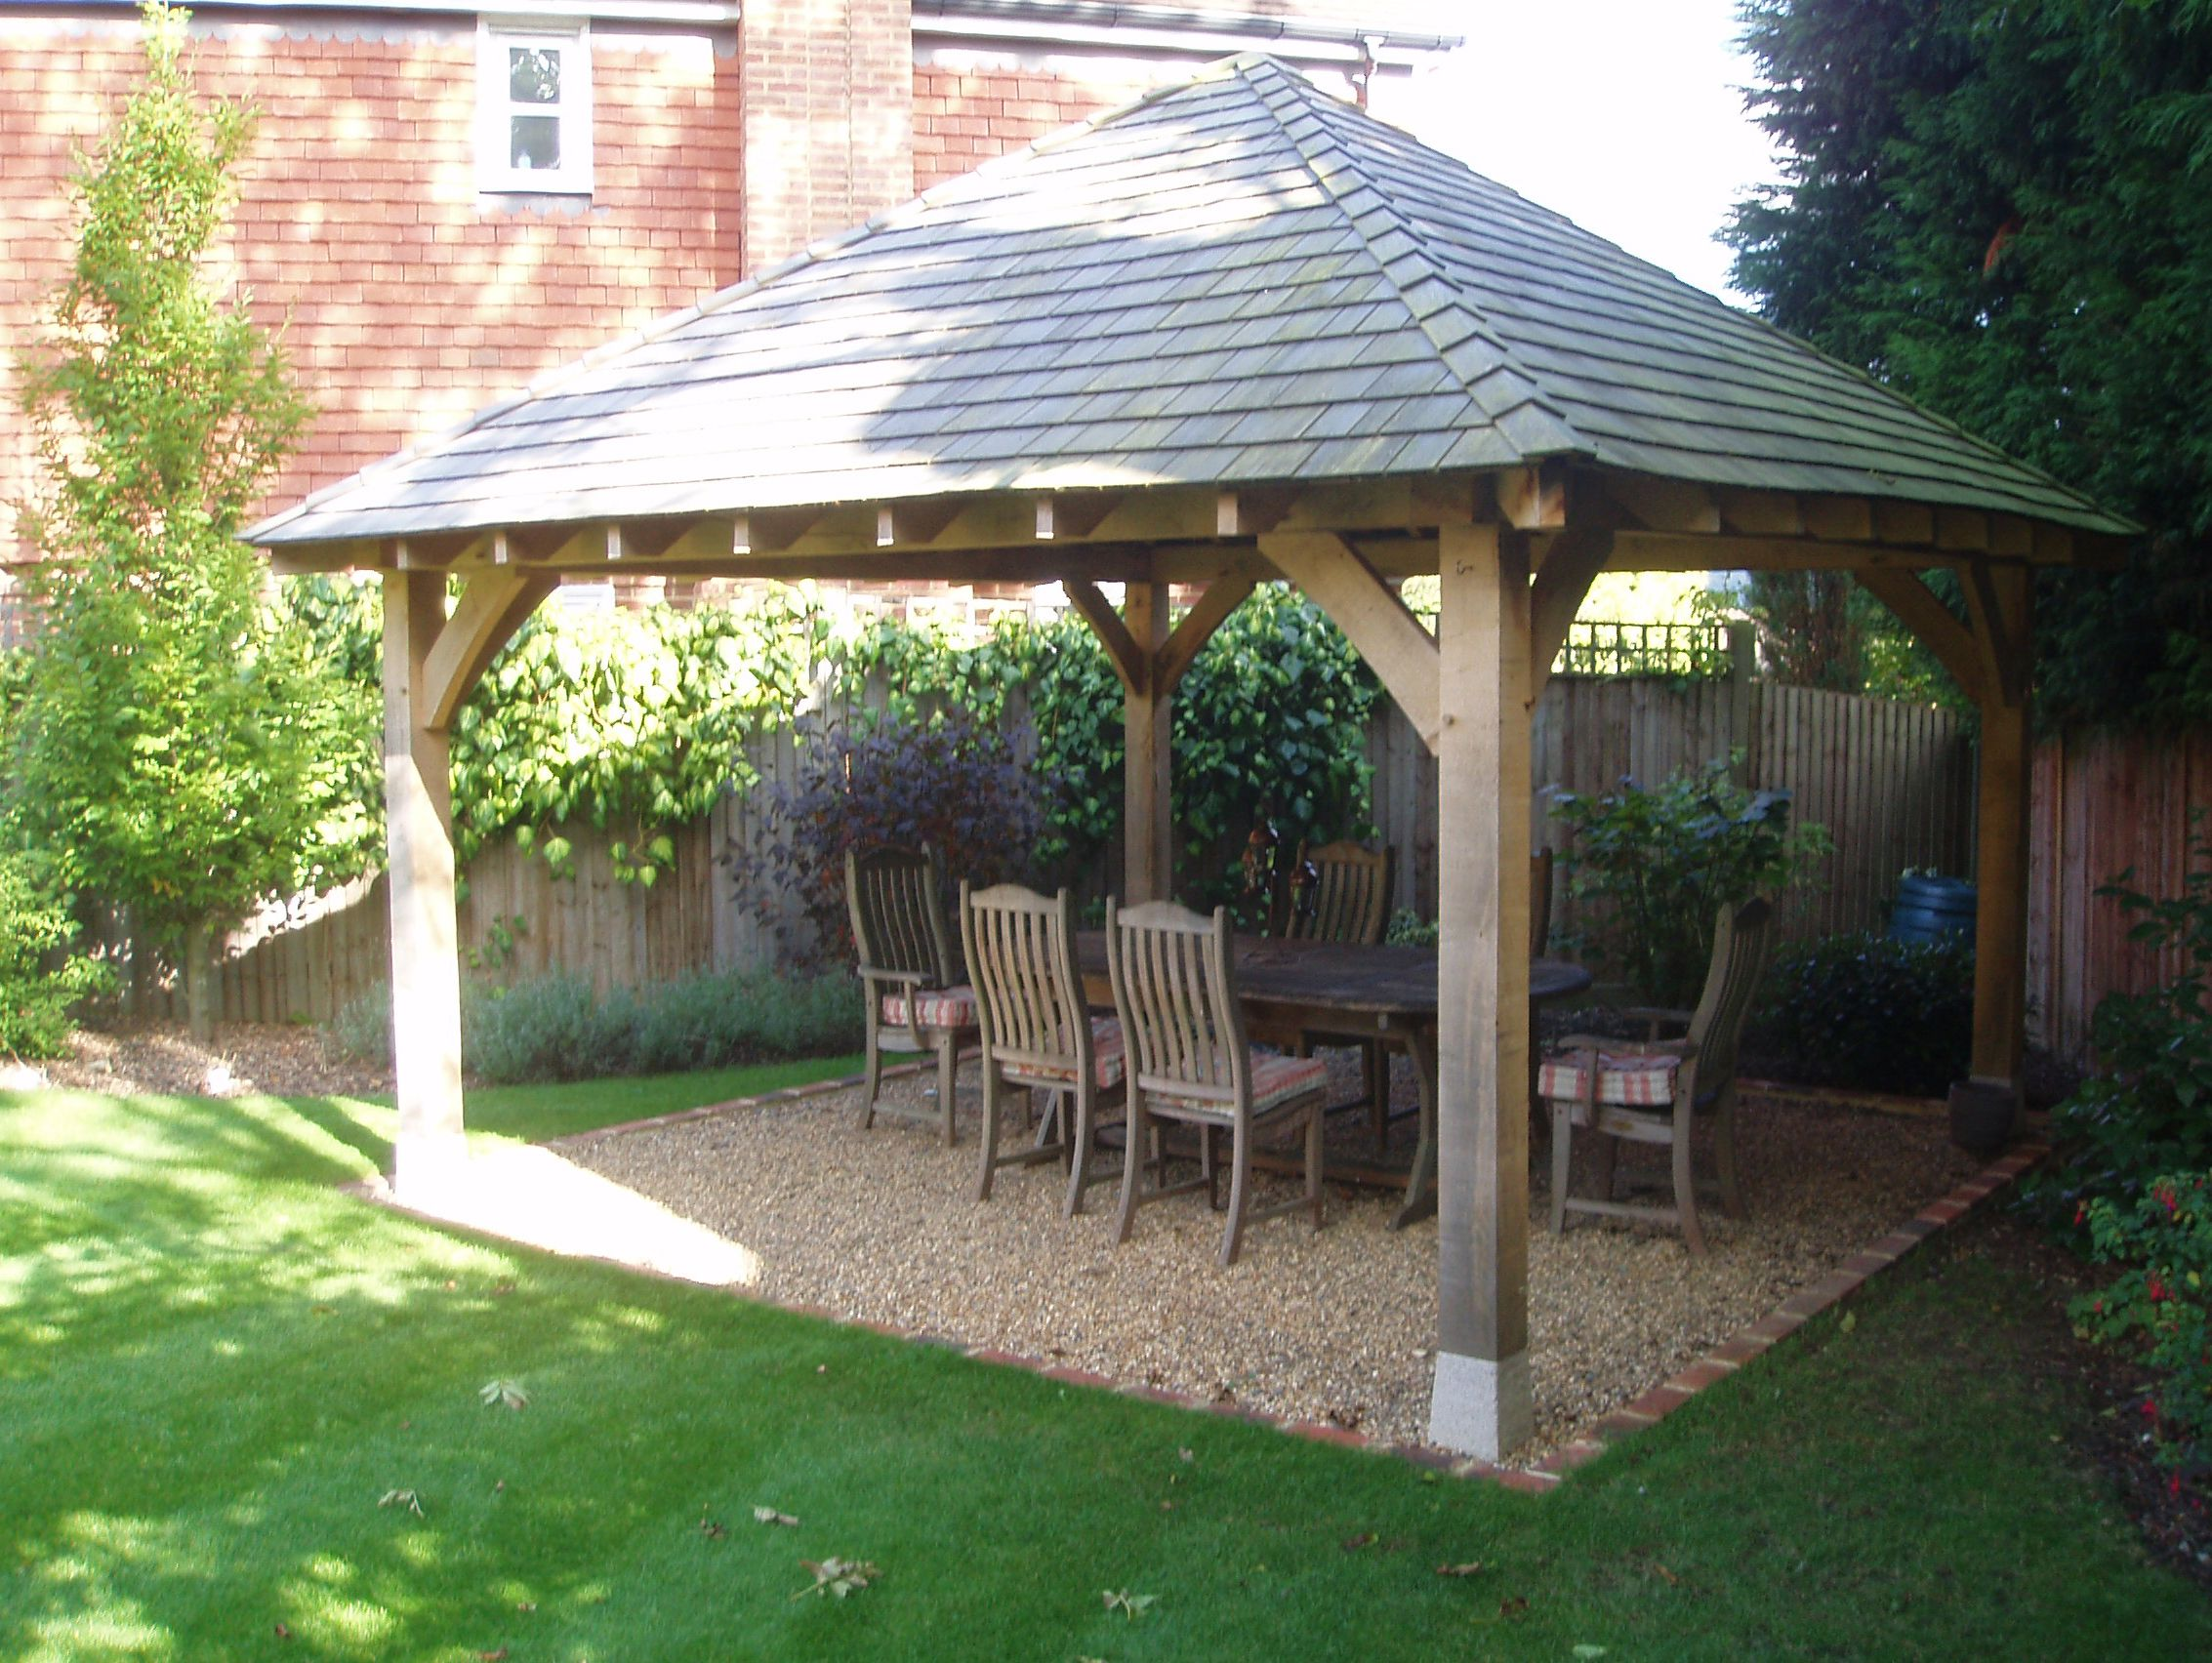 The Bespoke Pergola Archway That Leads To A Hidden Garden Room